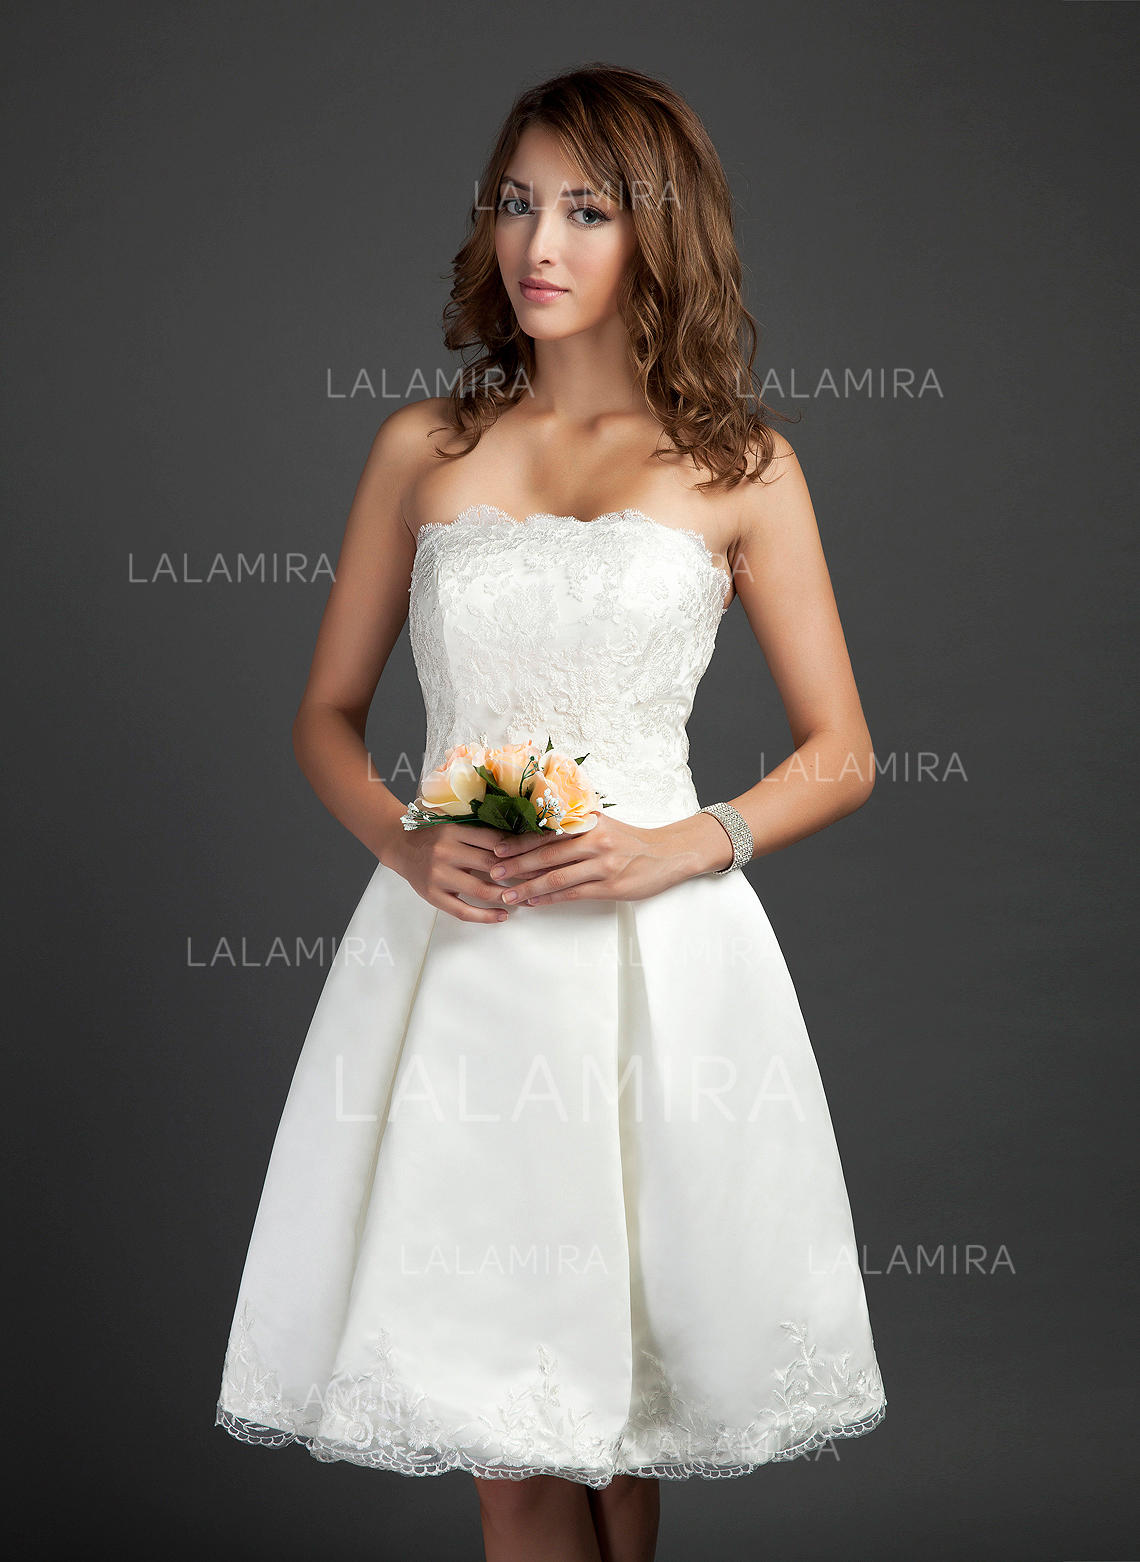 3a66cde6533 Newest Strapless A-Line Princess Wedding Dresses Knee-Length Satin  Sleeveless (002211505. Loading zoom